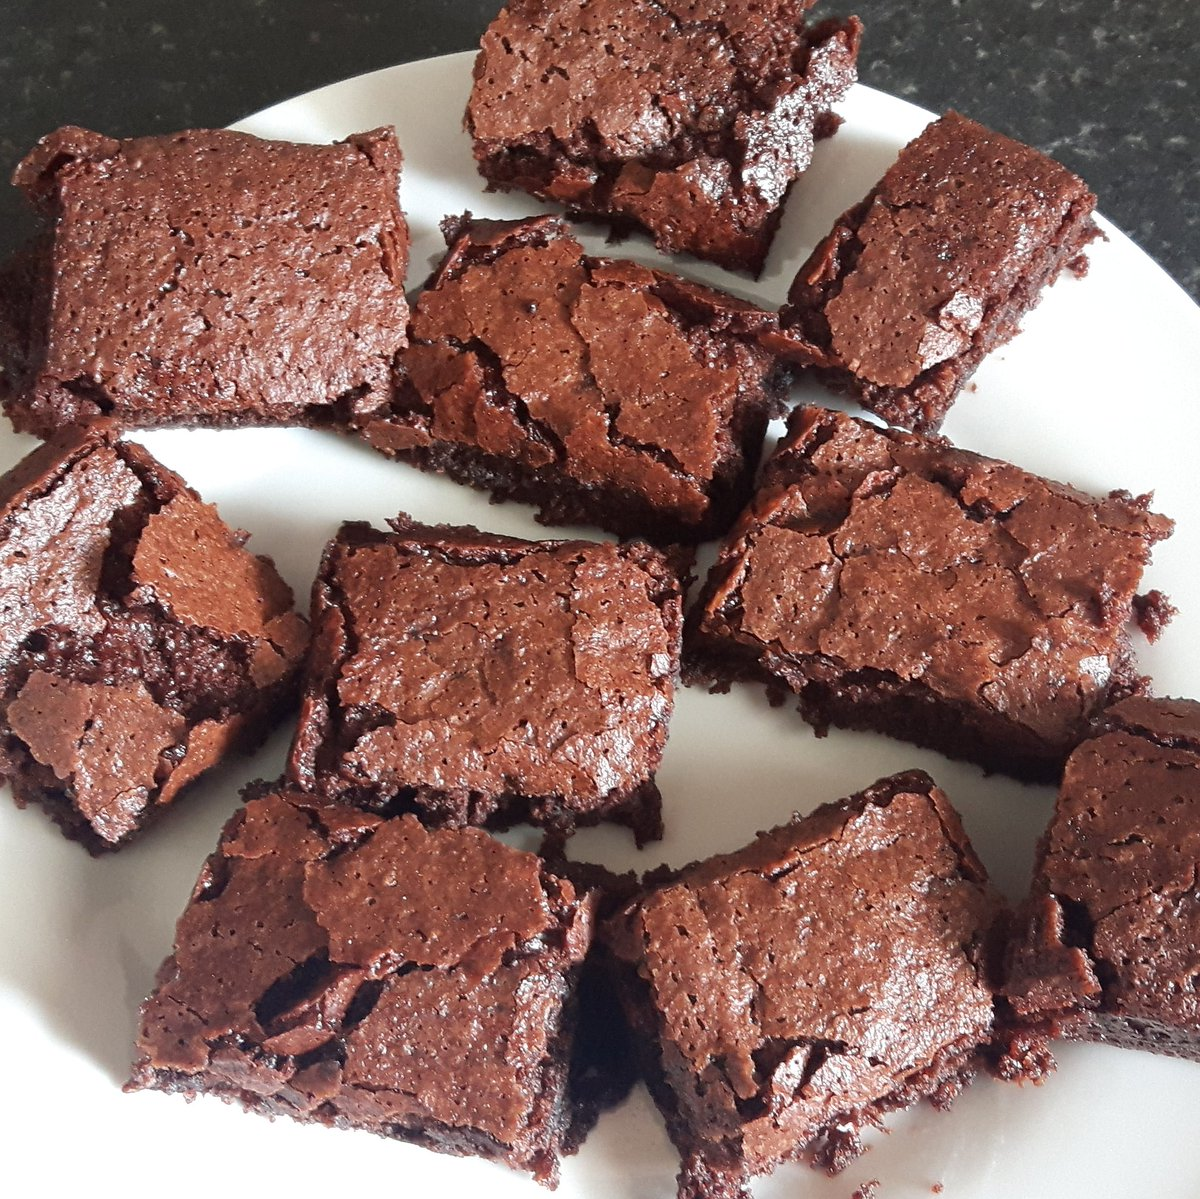 My favourite activity with my daughter on a wet day - #baking. #Vegan and #glutenfree #brownies - they are so good. Don't bake if on a diet. https://freefromyummies.ie/2018/09/20/vegan-gluten-free-brownies/… #dairyfree #soyafree #eggfree #glutenfree #peanutfree #nutfree #nutfreevegan #allergychild #coeliacfriendlypic.twitter.com/l3AvNBVk2U